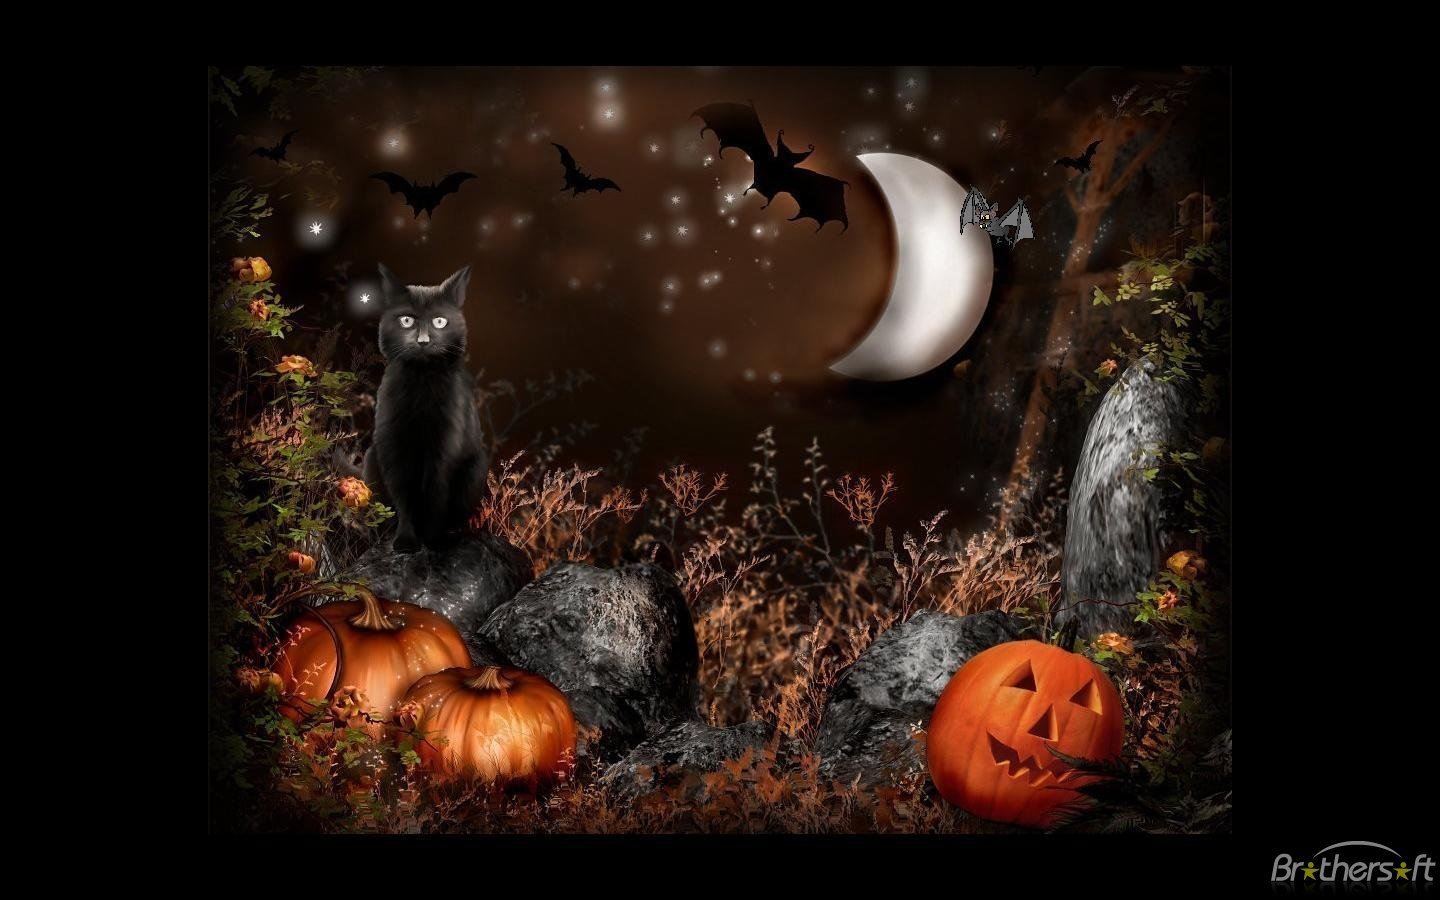 Download Artsy Halloween Scenes Screensaver Artsy Halloween 1440x900